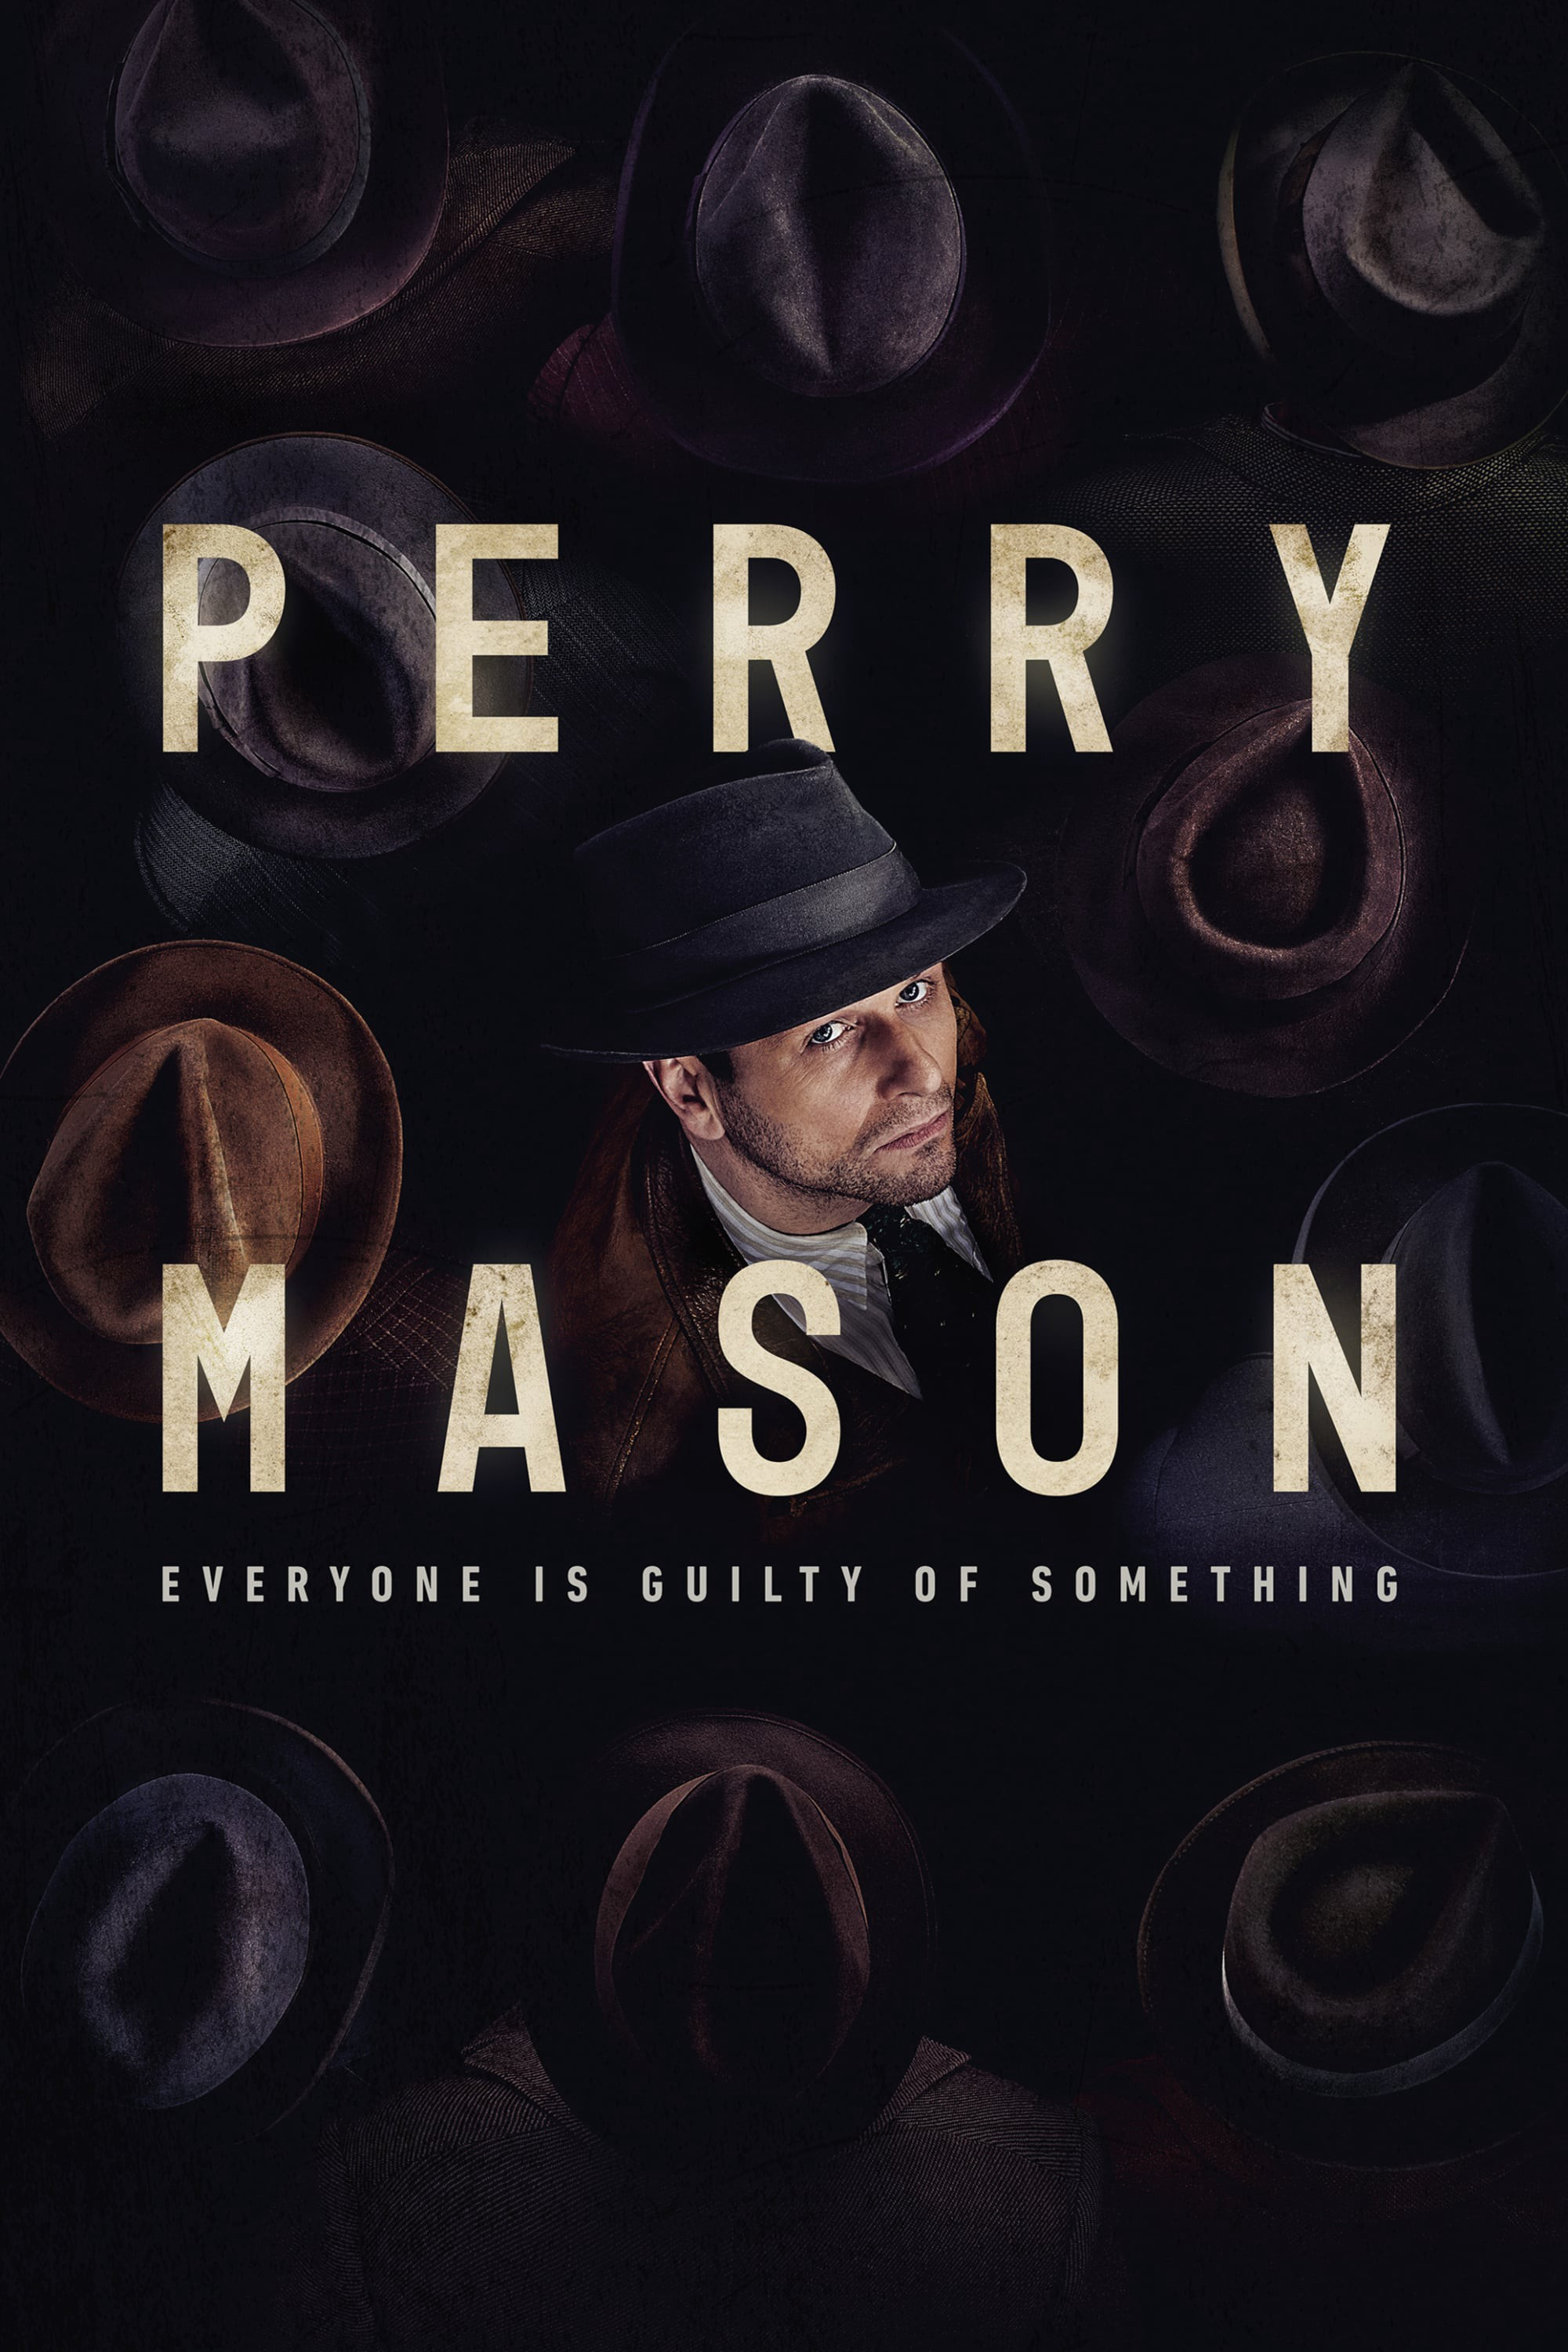 Perry Mason (2020) - Season 1 Episode 3 - Chapter Three